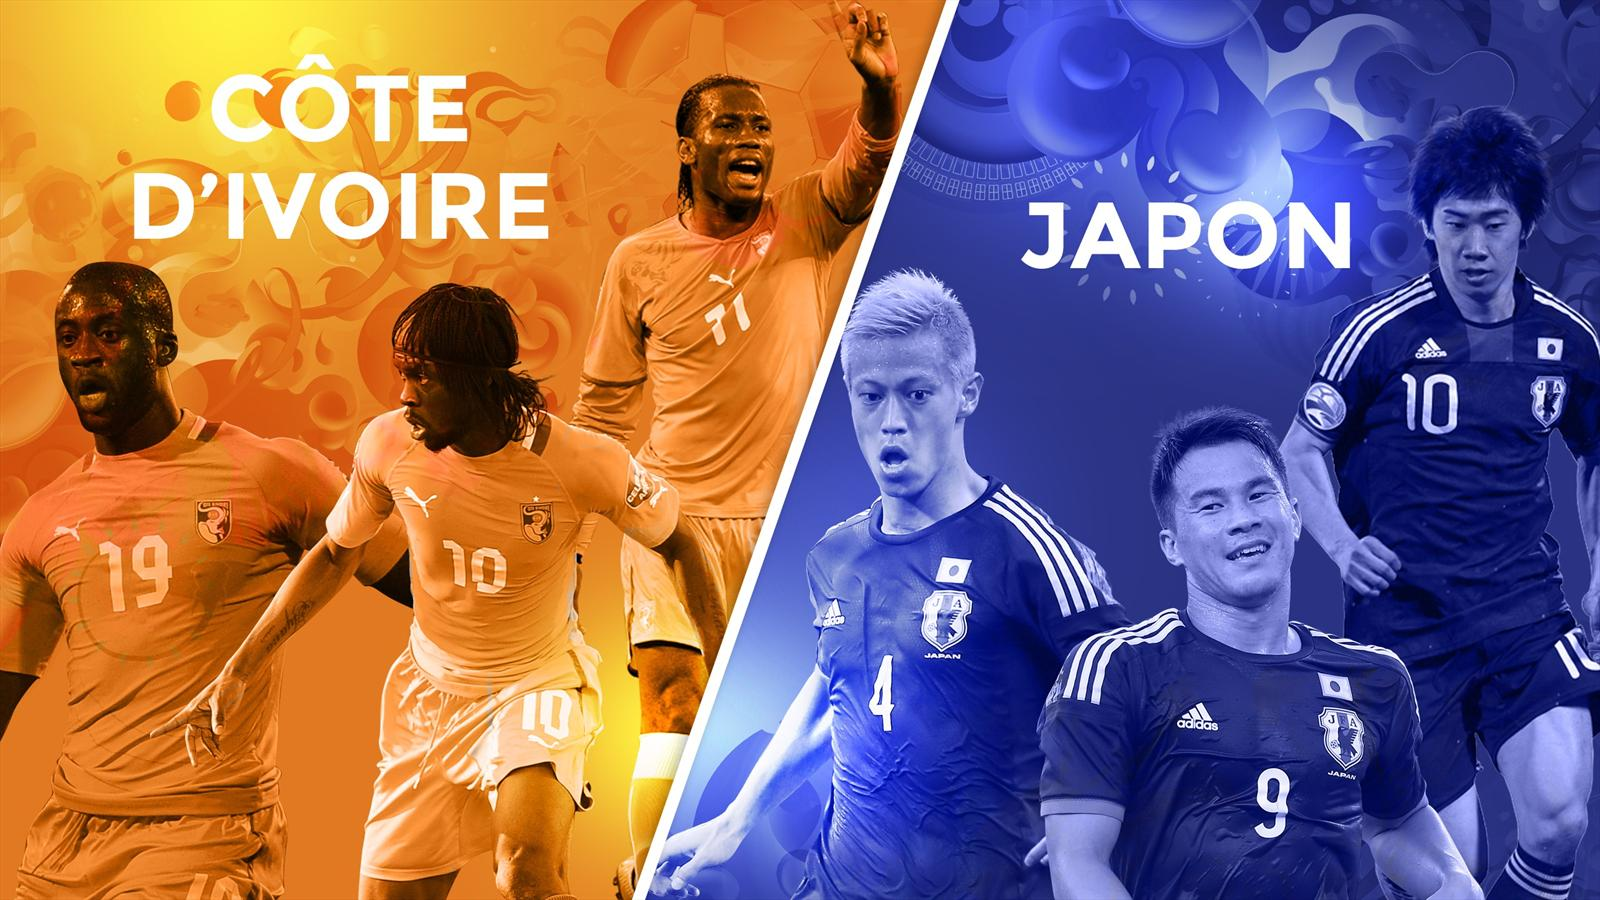 Le match Côte d'Ivoire Vs Japon sera retransmis en direct sur beIN Sport 1